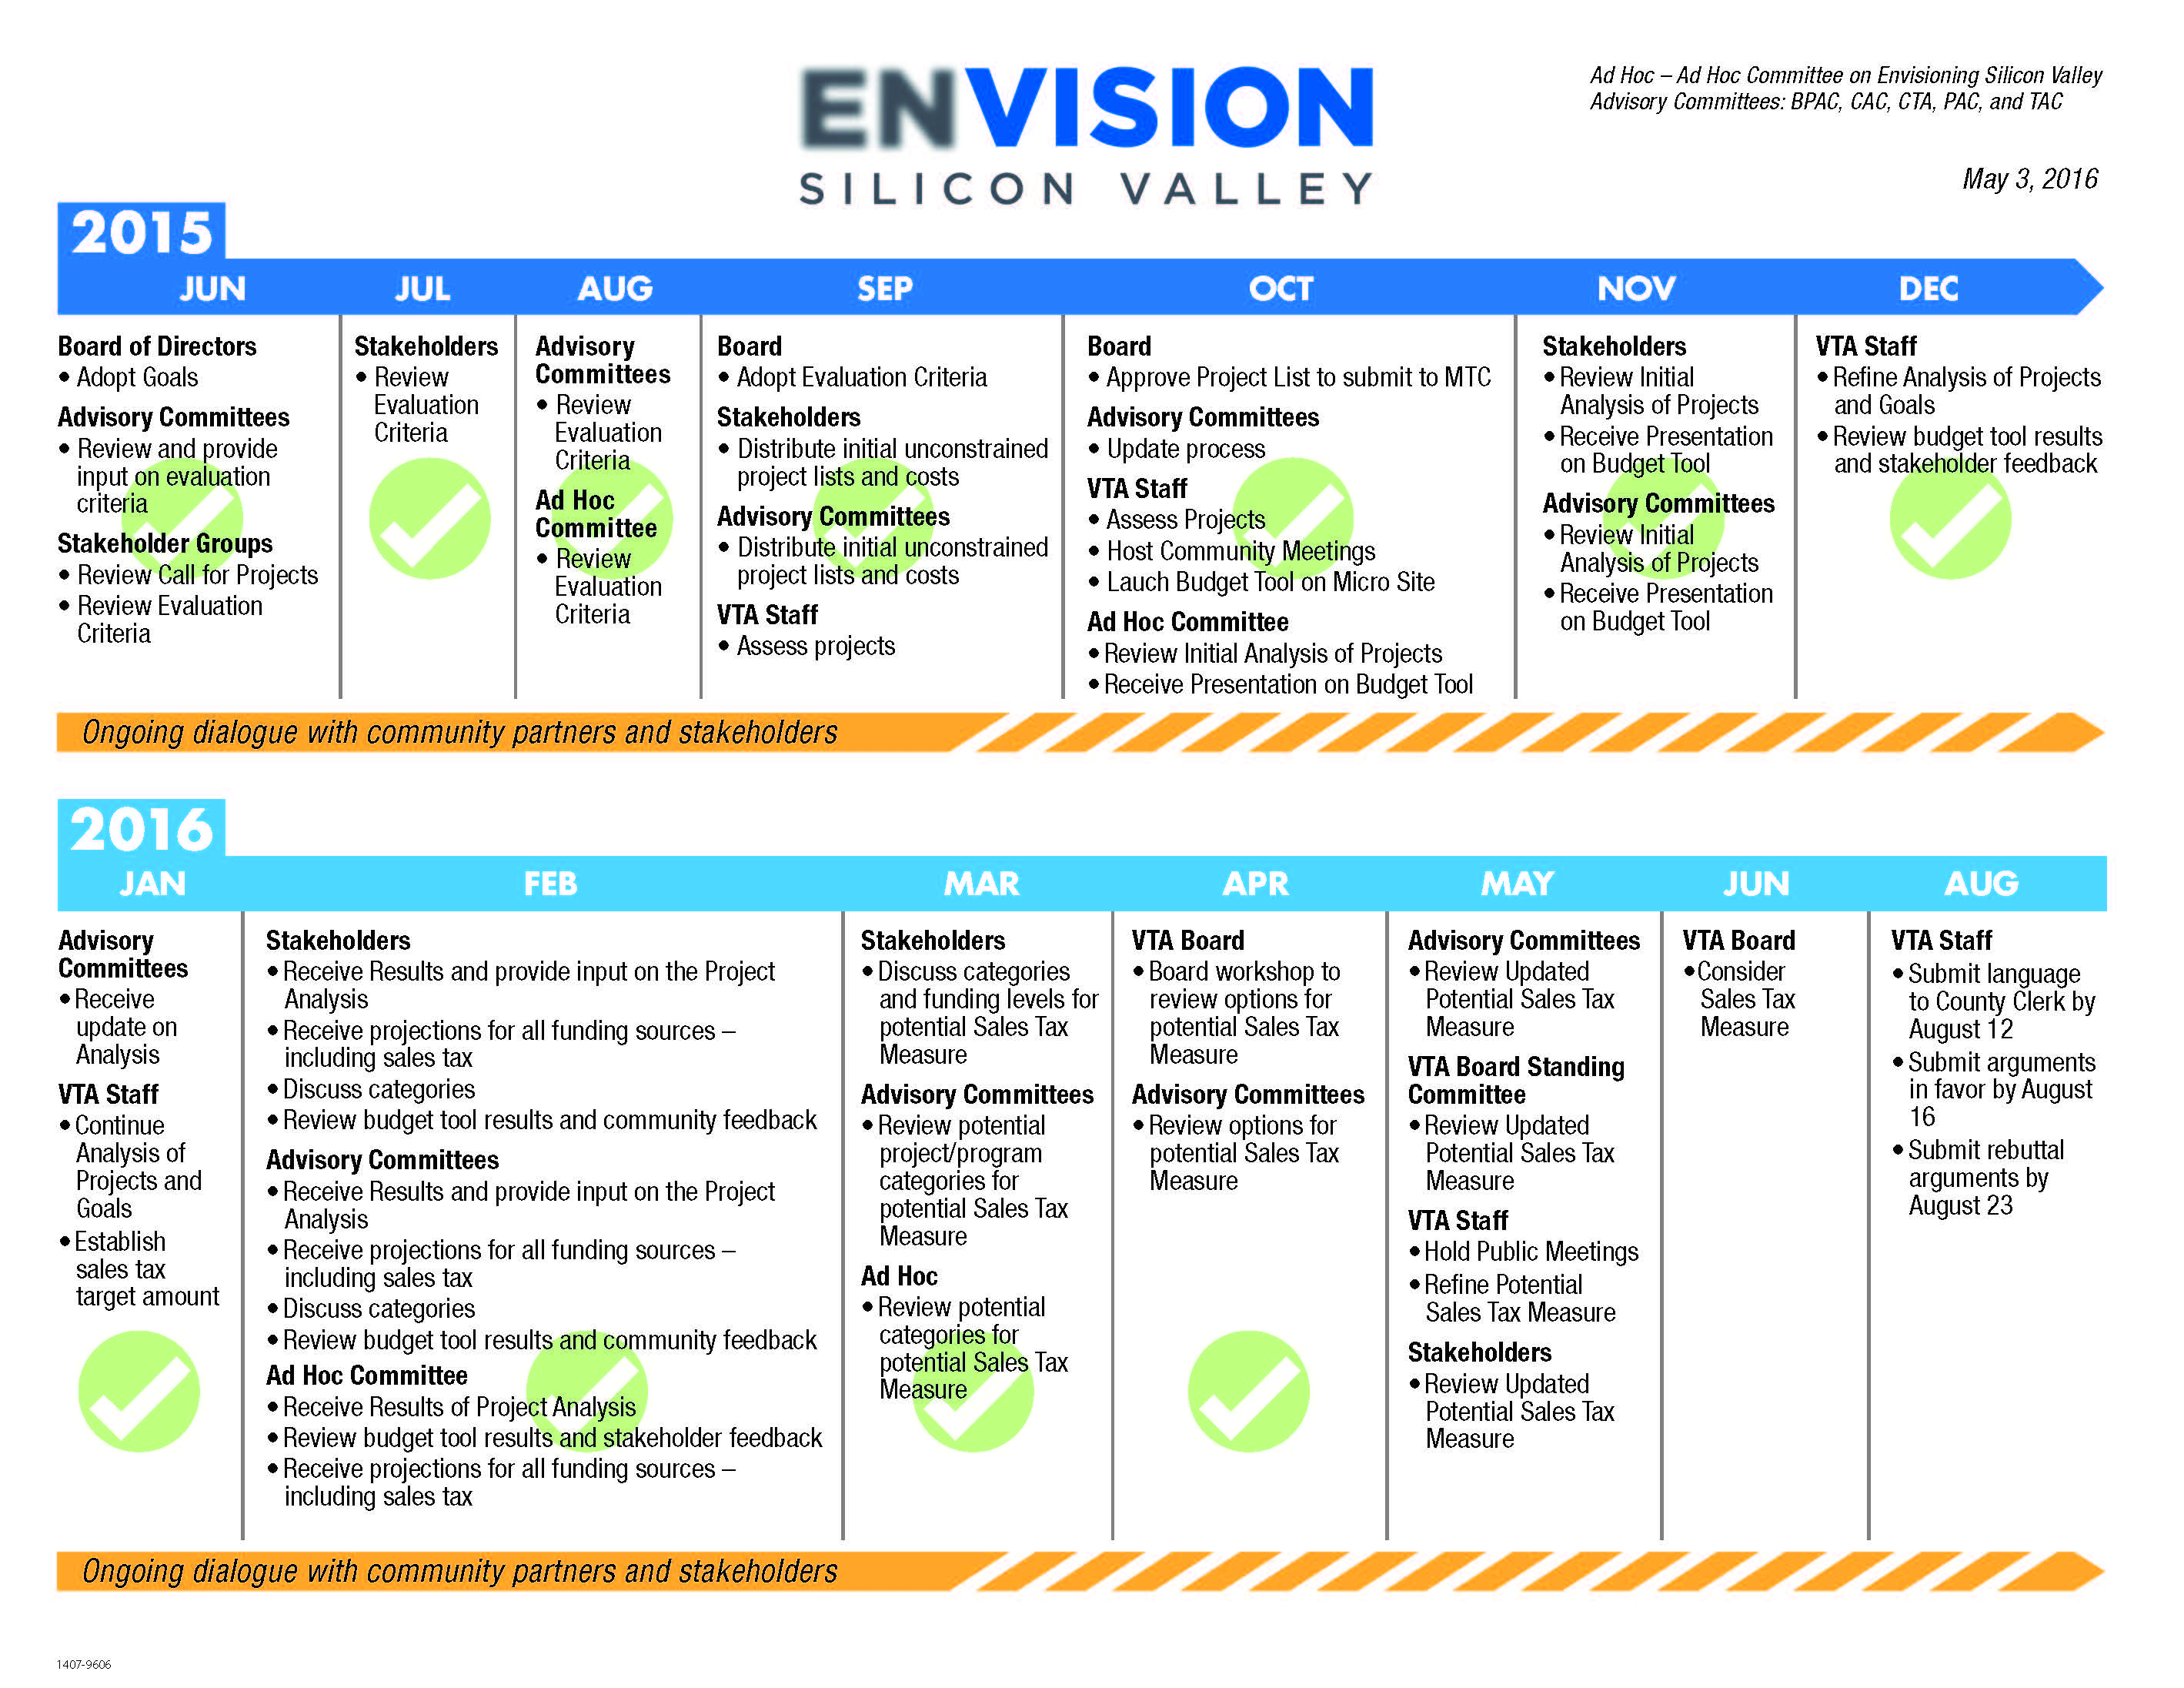 Envision Silicon Valley program schedule updated May 4, 2016